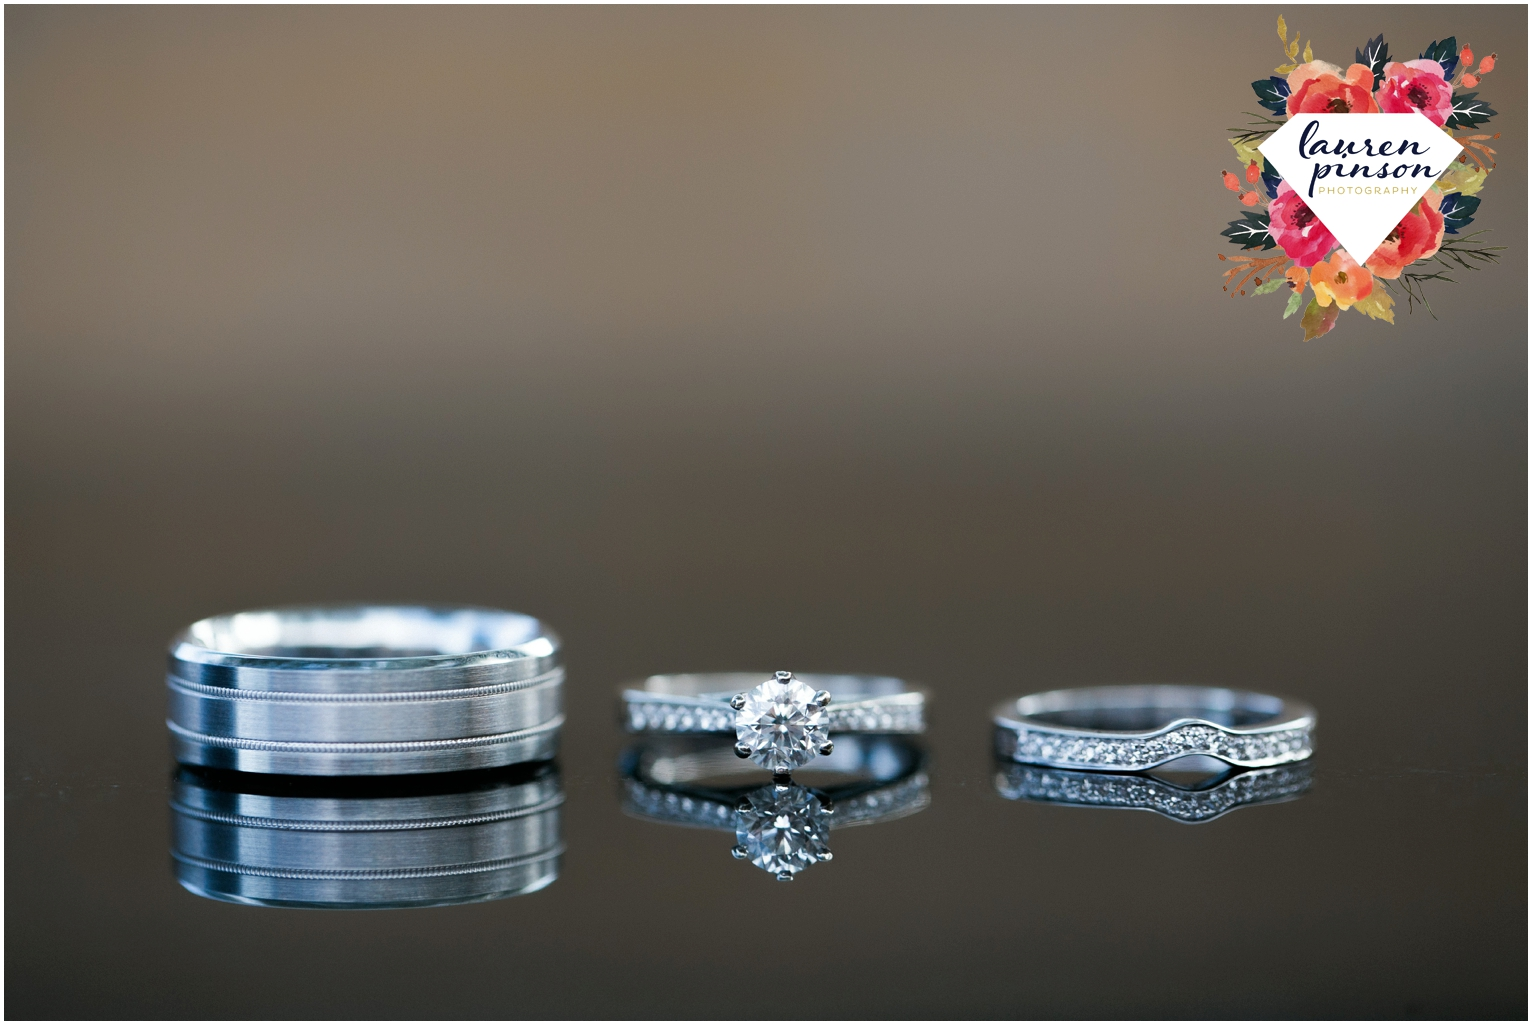 wichita-falls-wedding-photographer-kemp-center-at-the-forum-photography-two-clever-chicks_1037.jpg